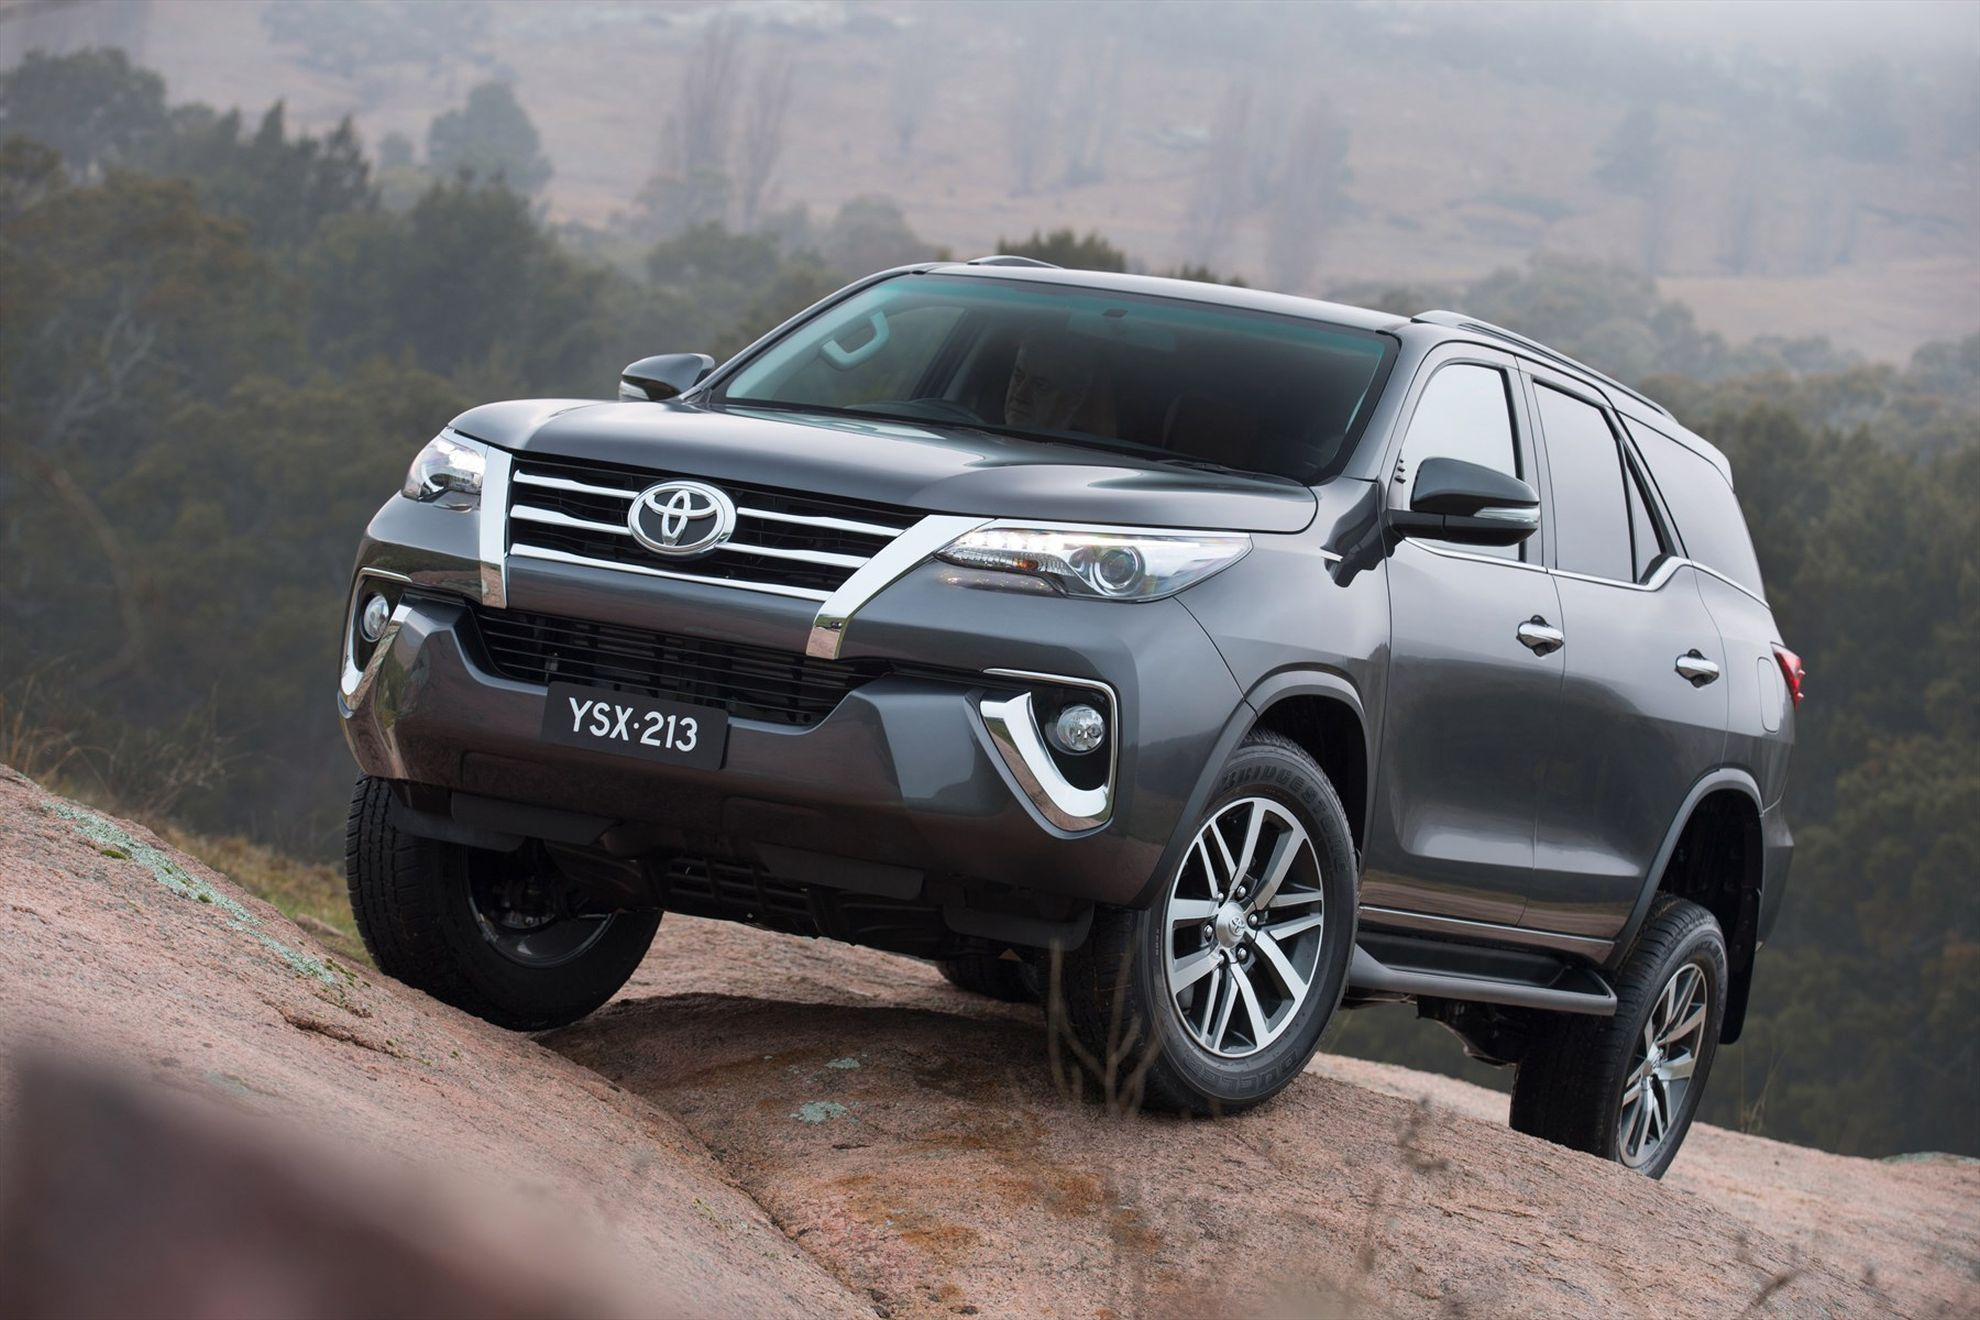 The-all-new-bolder-Toyota-Fortuner-bows-in